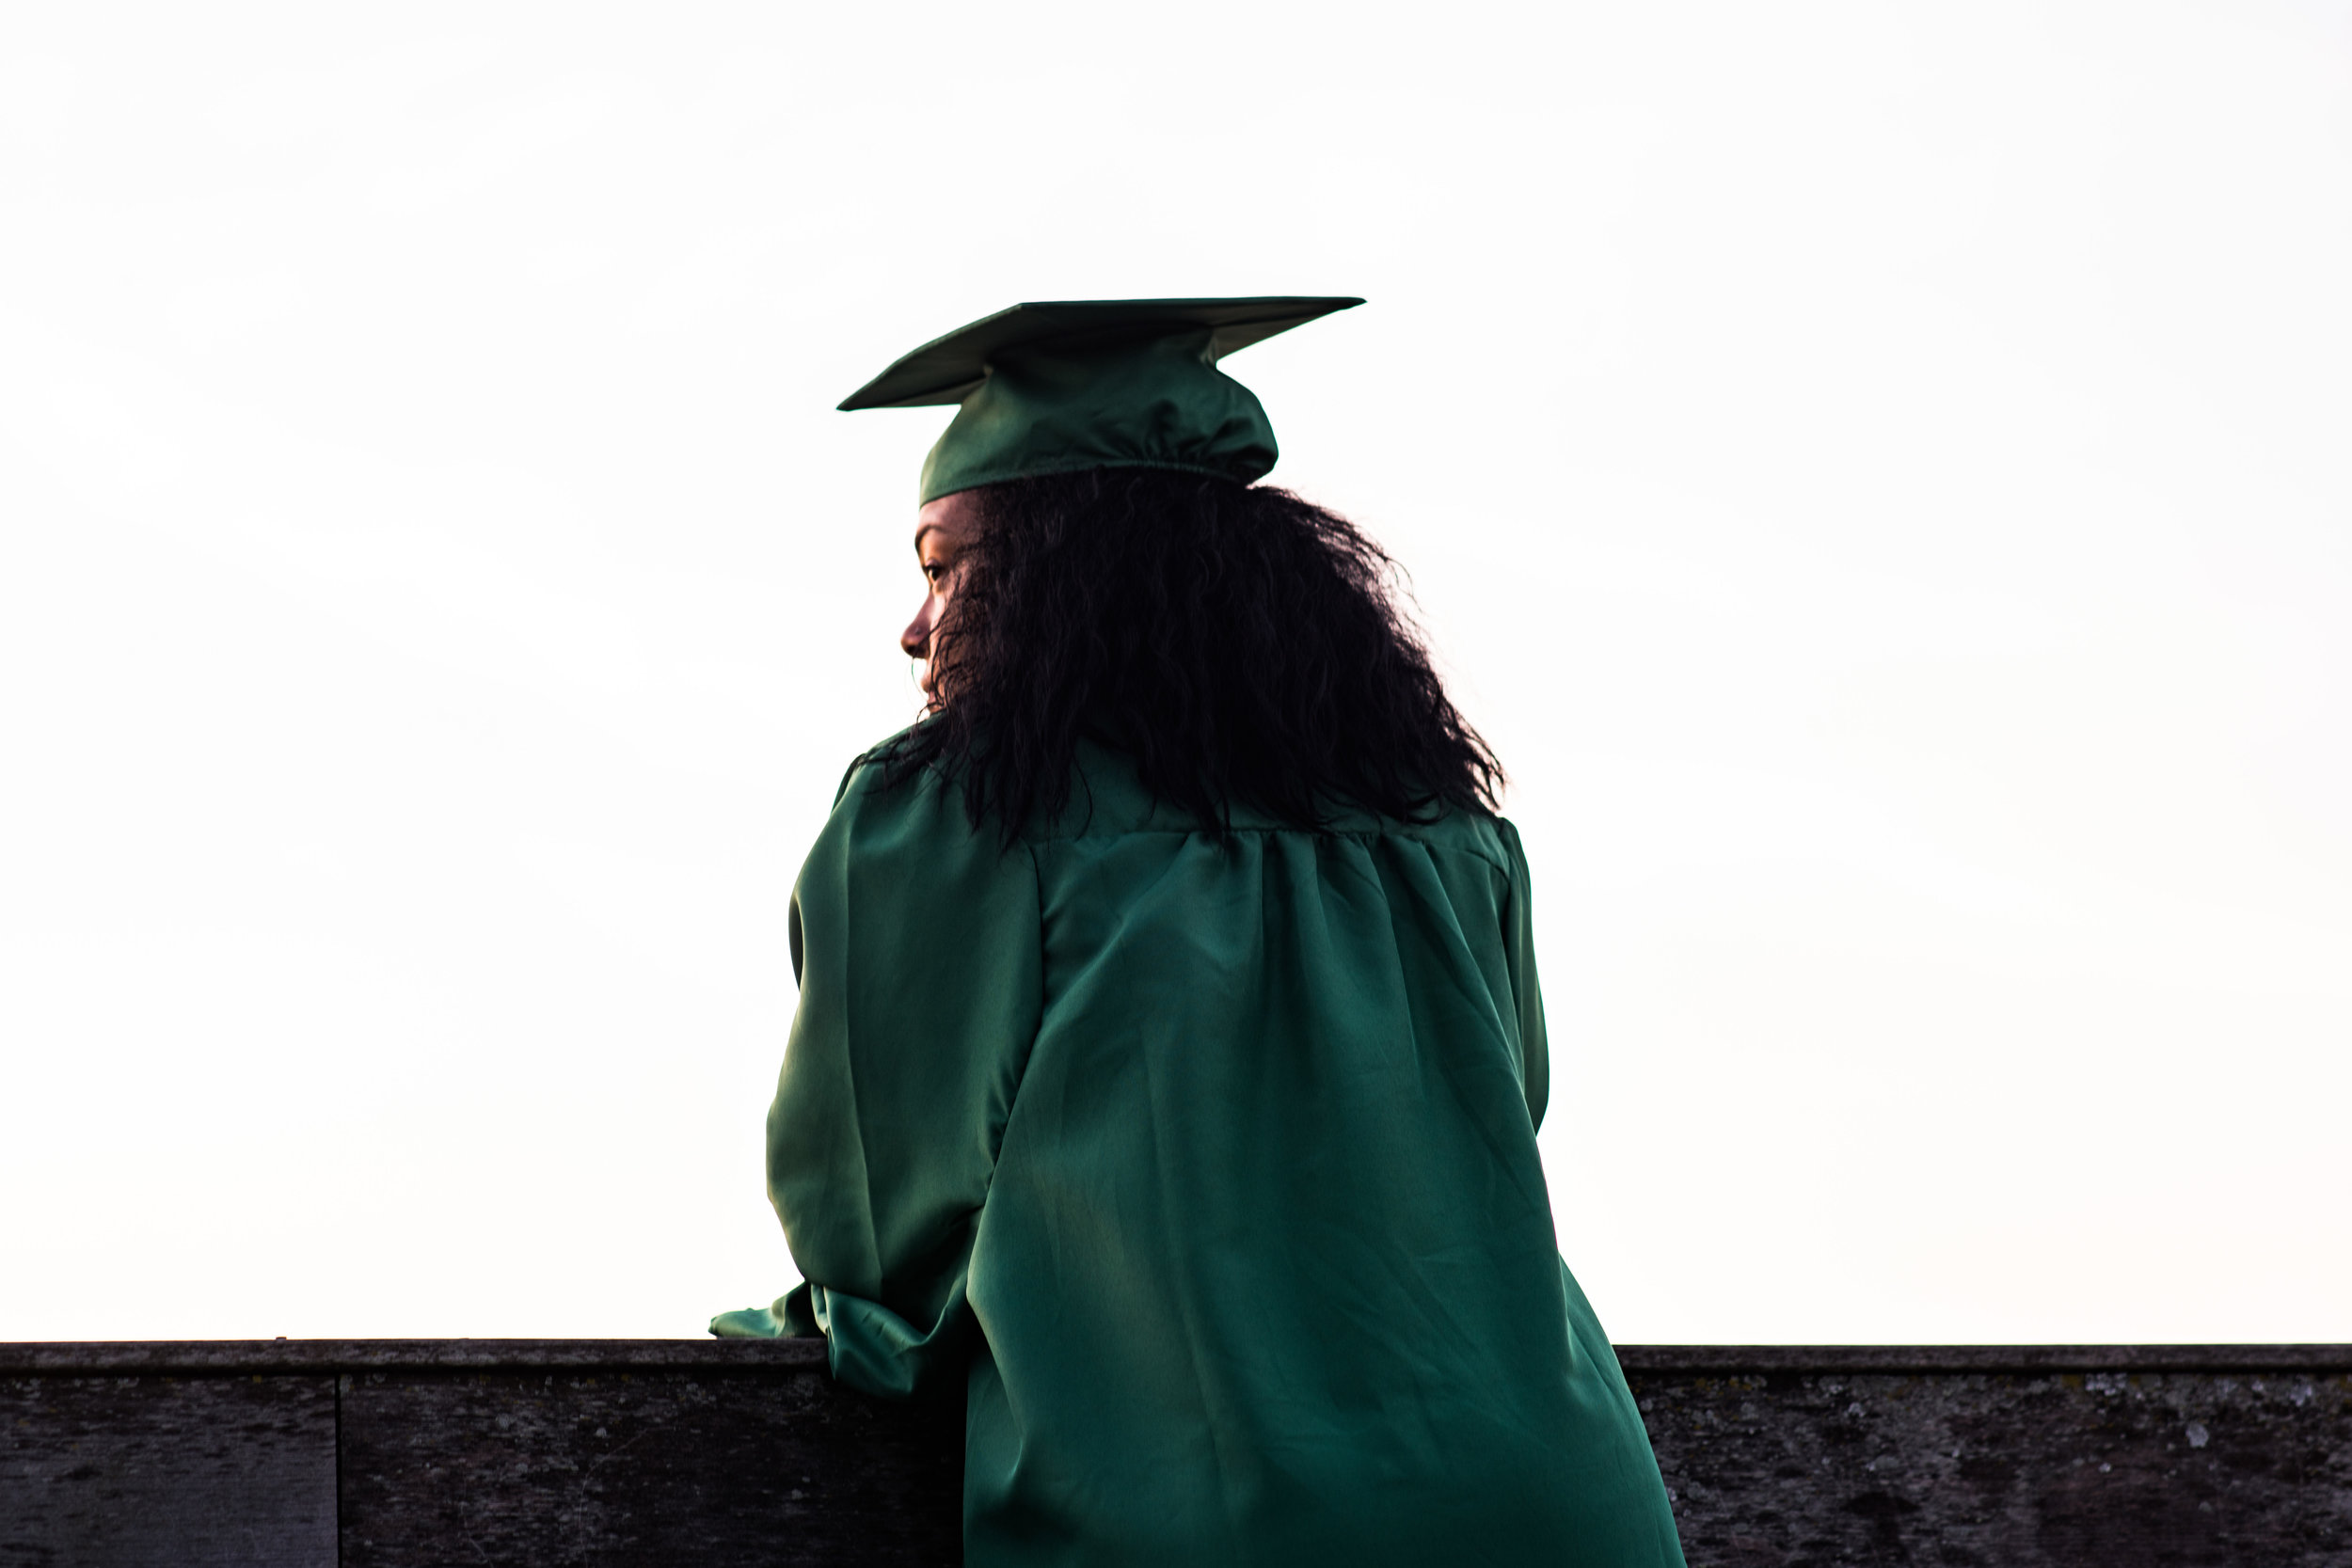 AFSCME Free College - AFSCME members and their families can earn an Associate's degree, paid for by AFSCME. Click for more info.